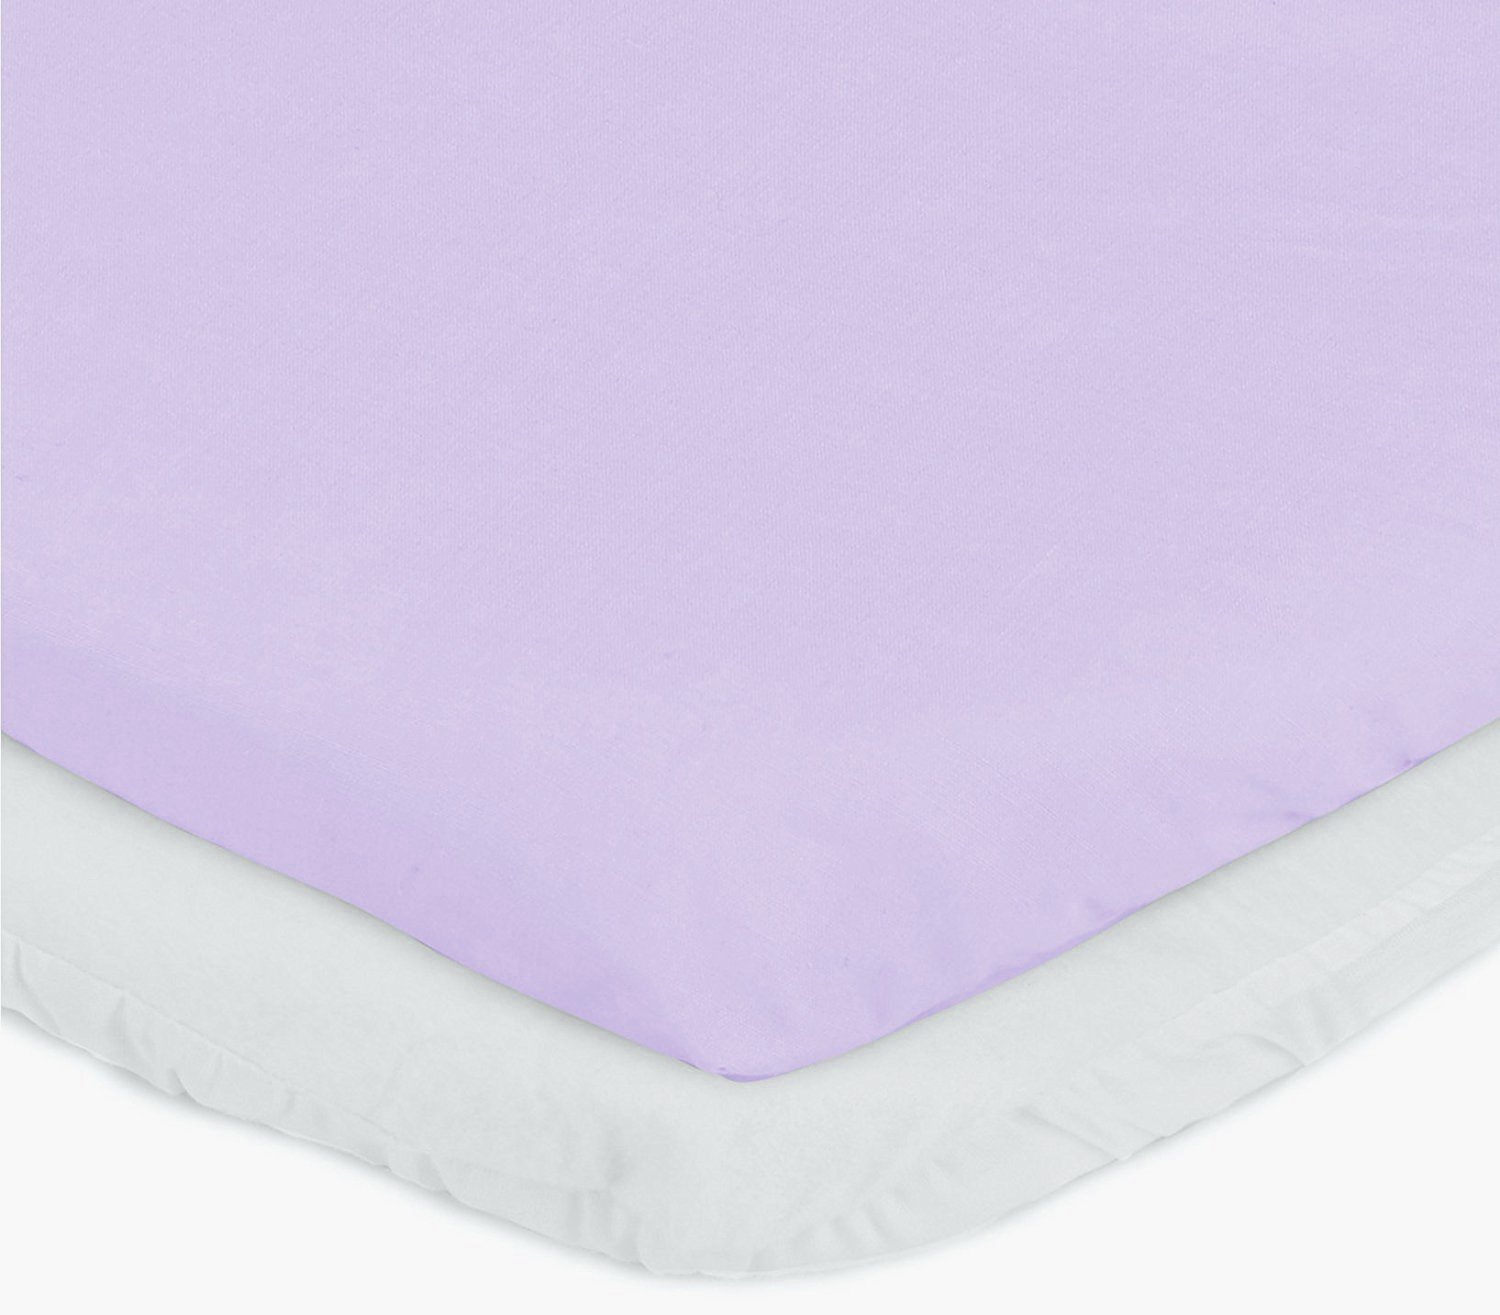 aBaby Cradle Mattress Protector and Sheet Combo 15 x 33 White